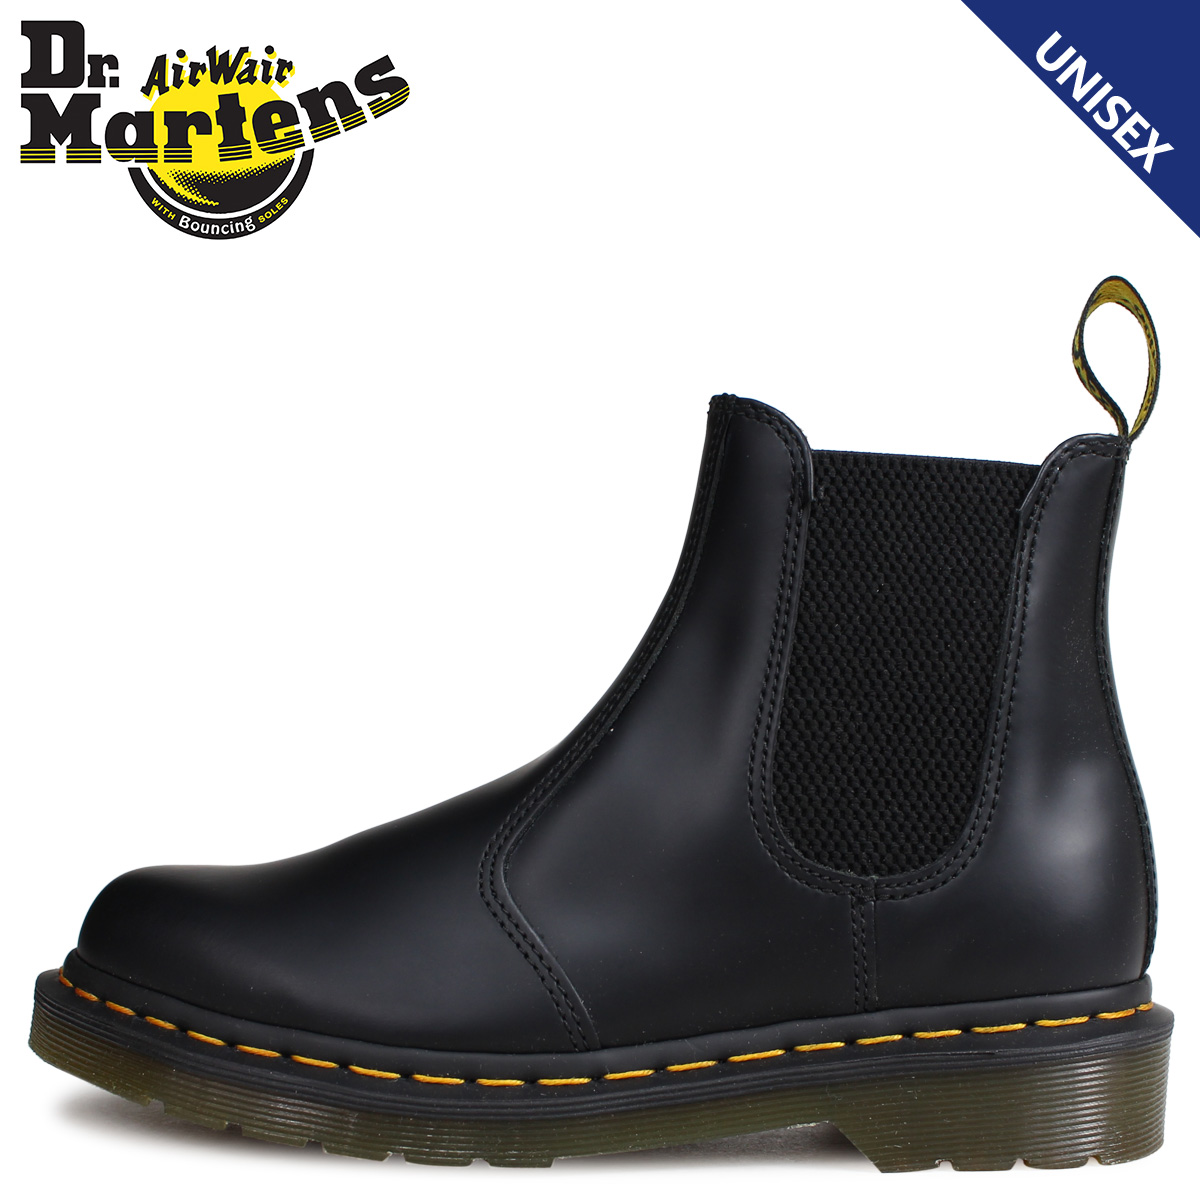 68be08b44c Dr.Martens doctor Martin 2976 side Gore Chelsea boot men gap Dis ARCHIVE YS  black ...